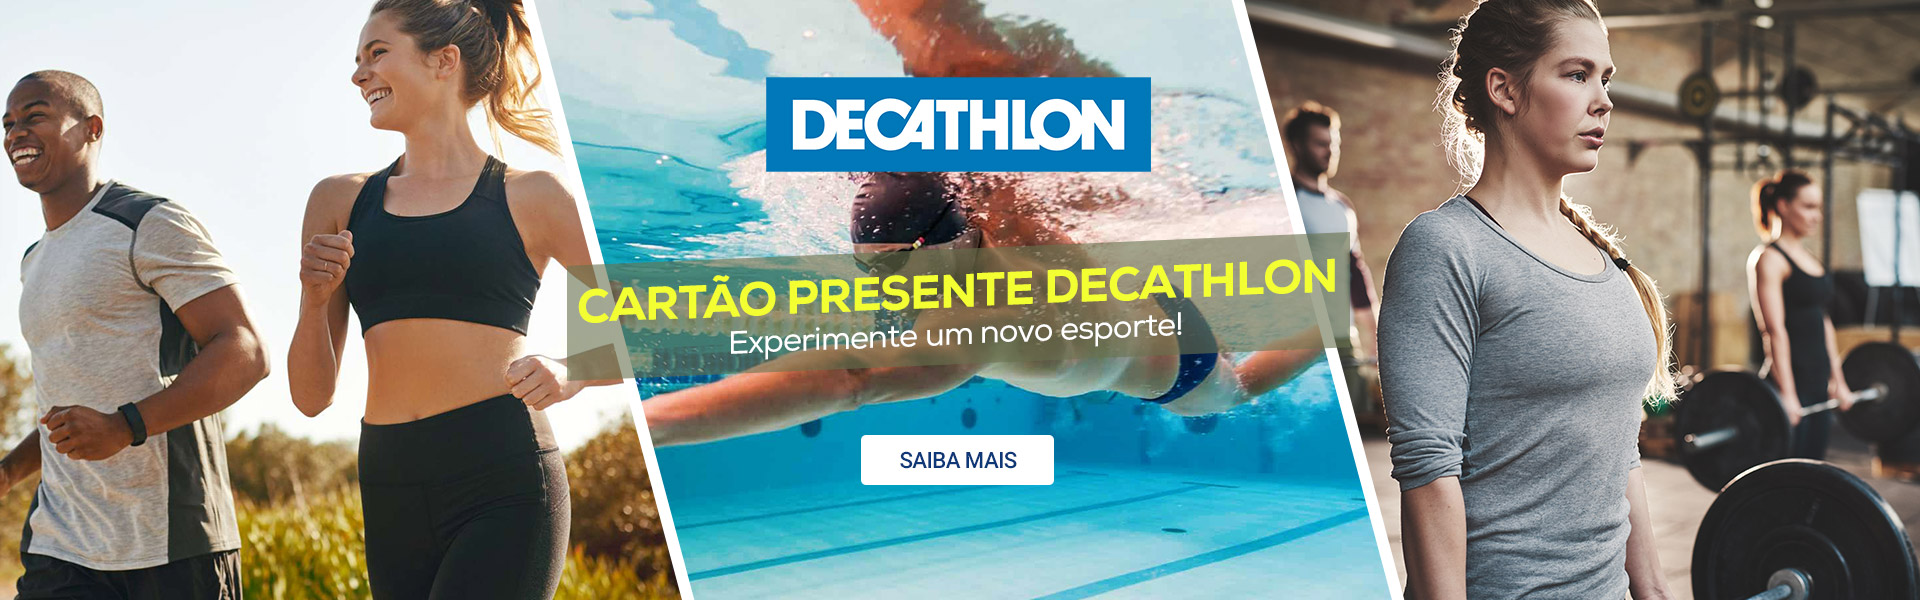 201912_slider_decathlon